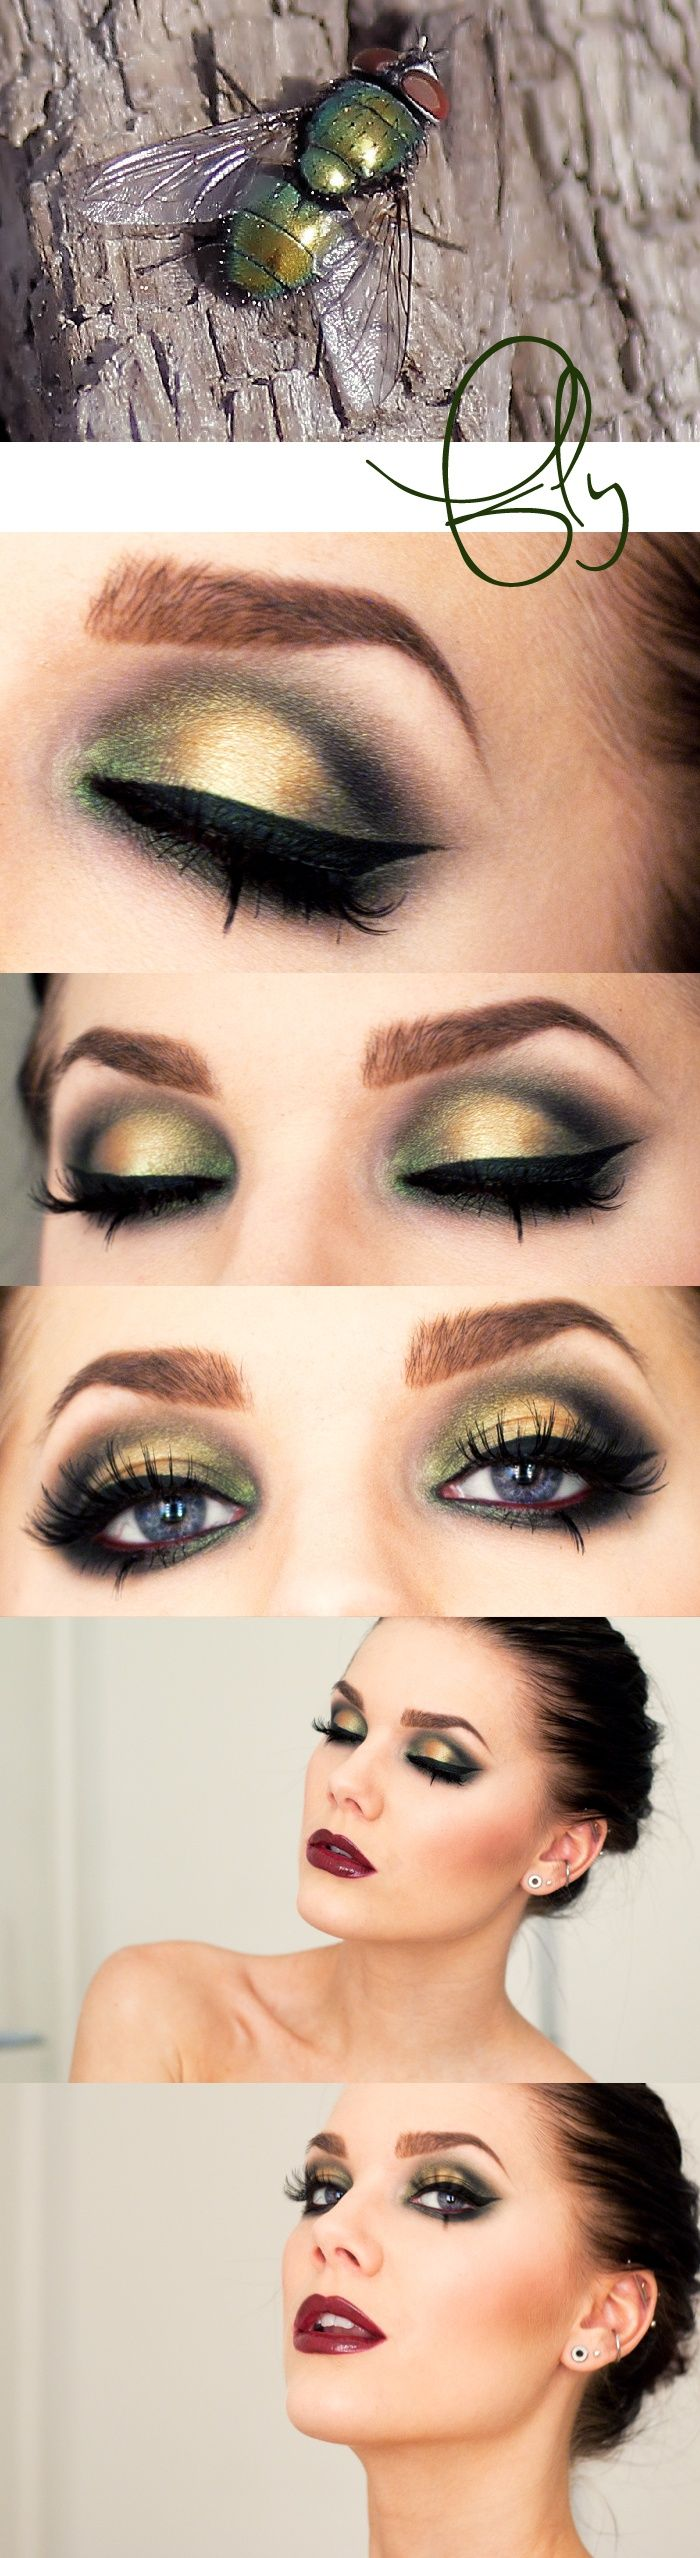 I love green eyeshadow & what it does to bring out my eyes! I should use it more than I do...